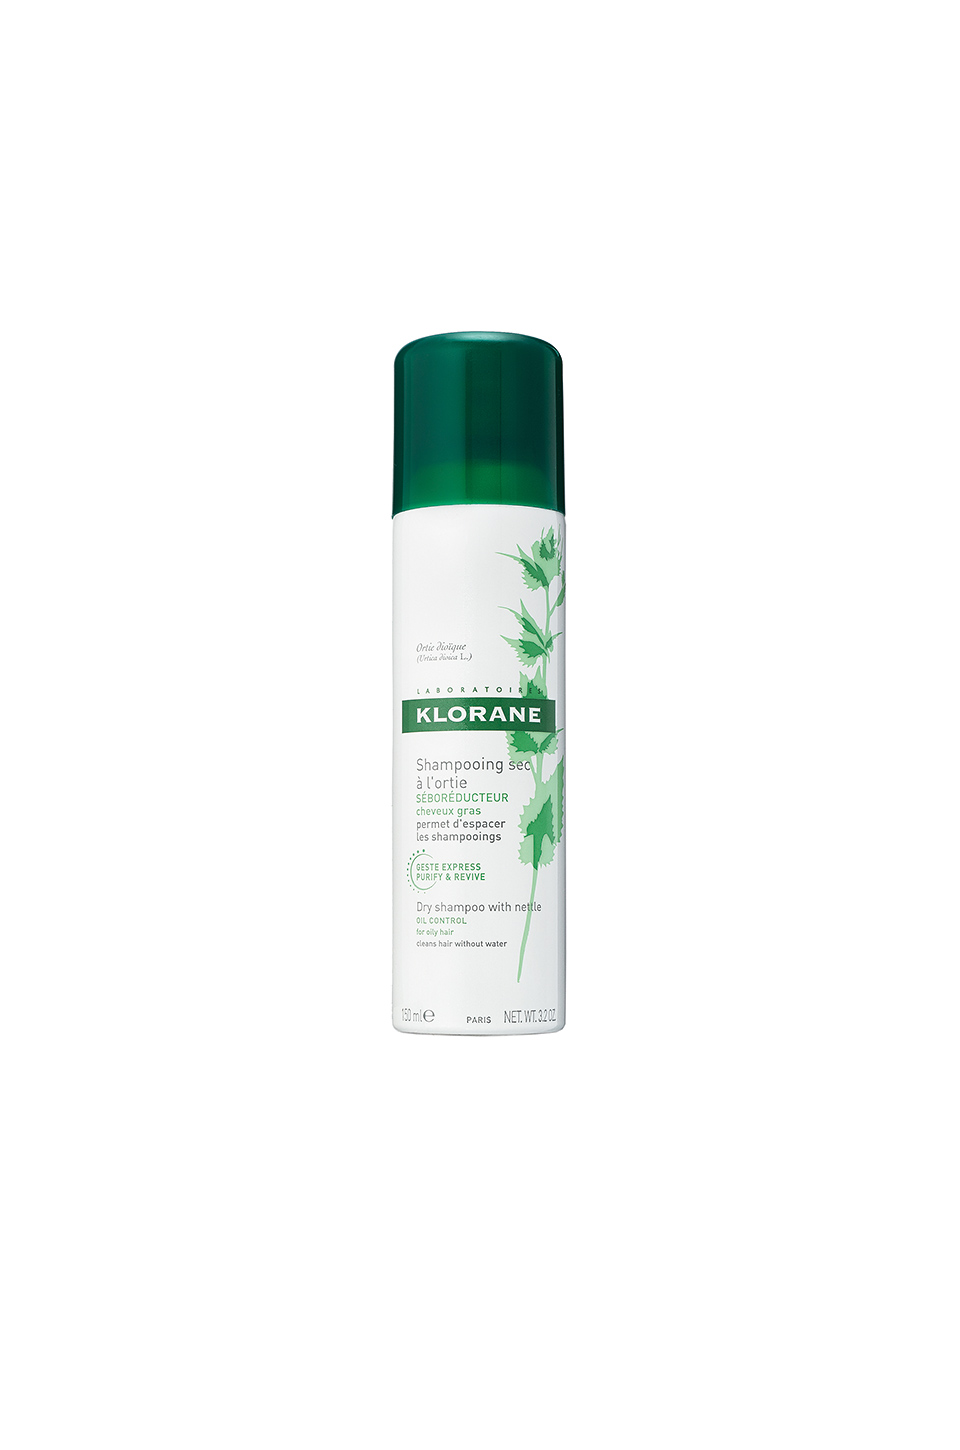 Klorane Dry Shampoo with Nettle in